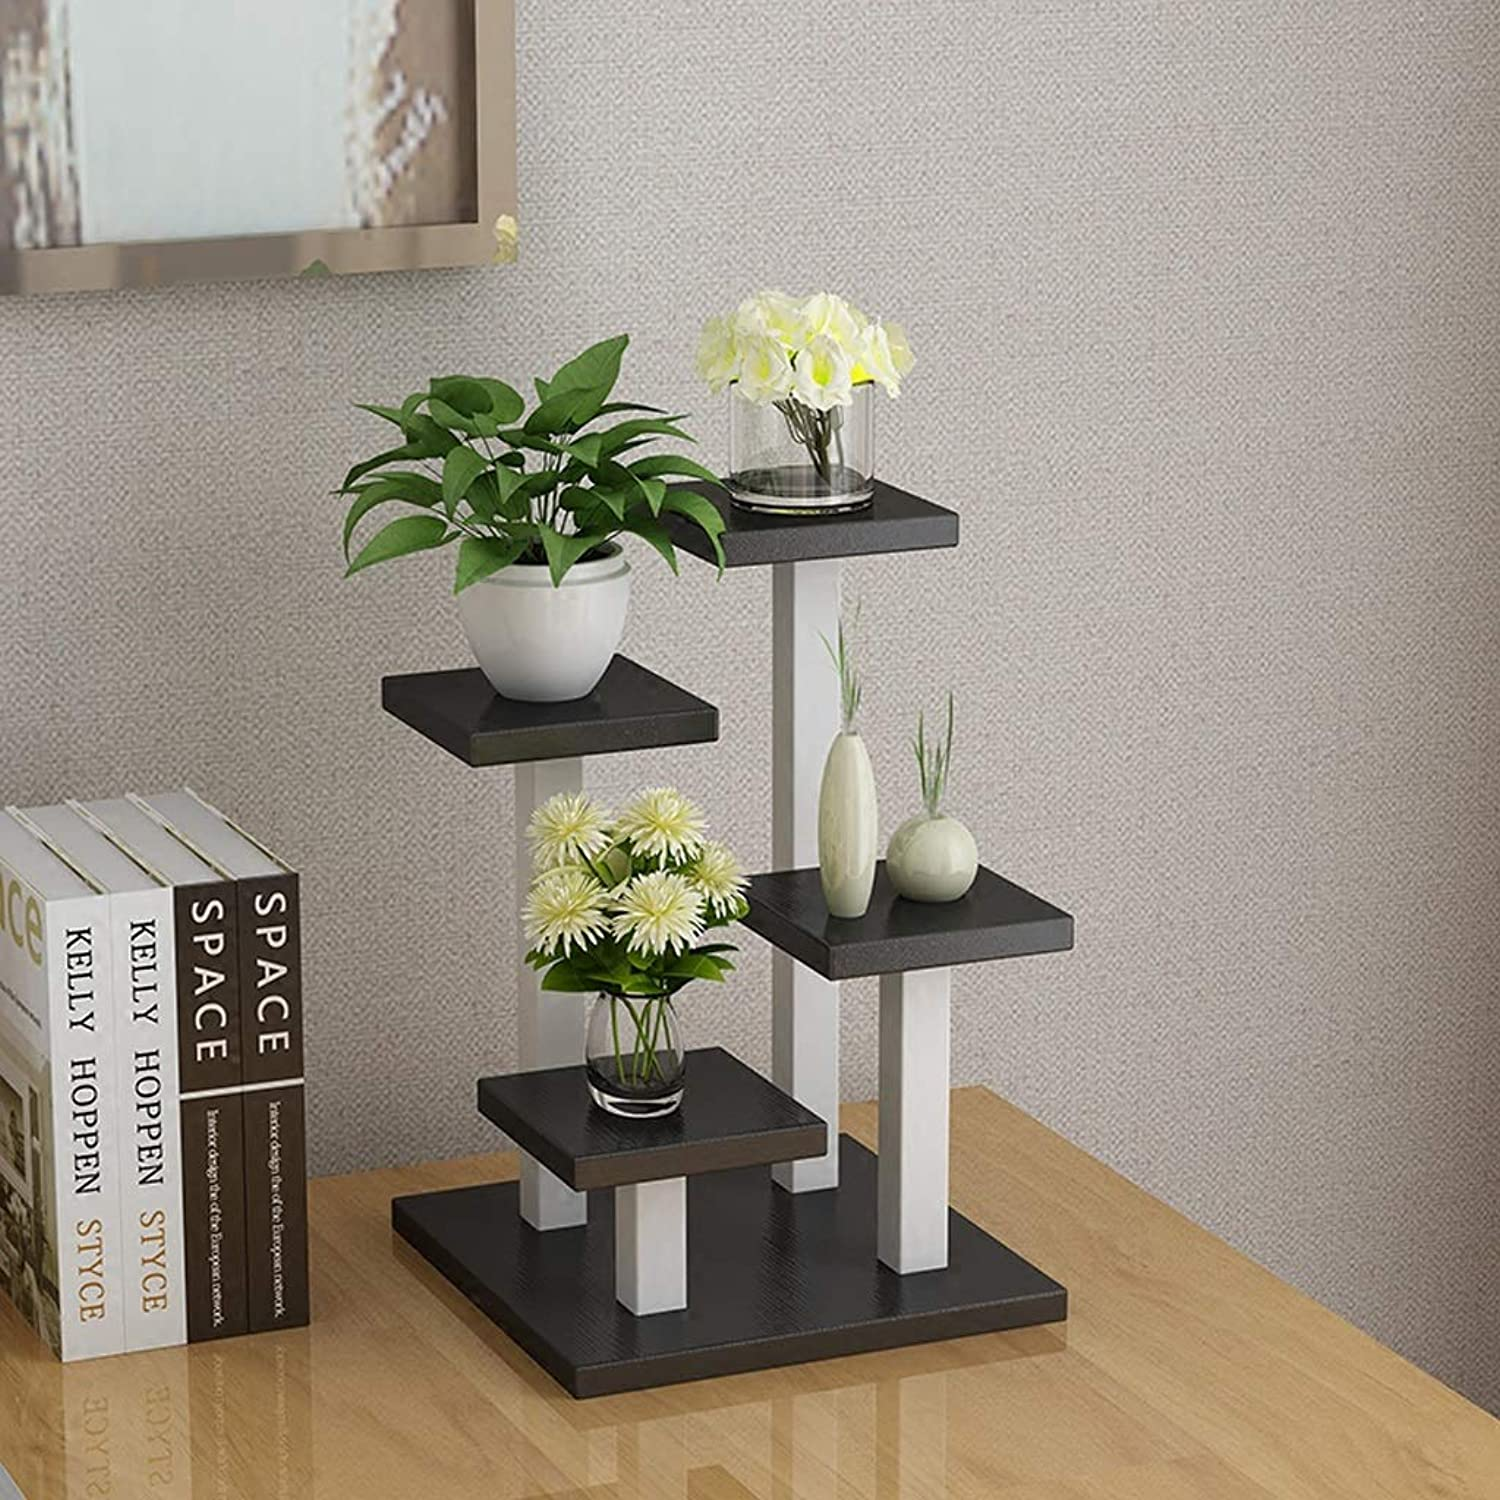 Flower racks - Solid Wood Flower Stand Creative Small Plant Display Shelf Multifunctional Storage Rack 24×24×35cm (color   E)